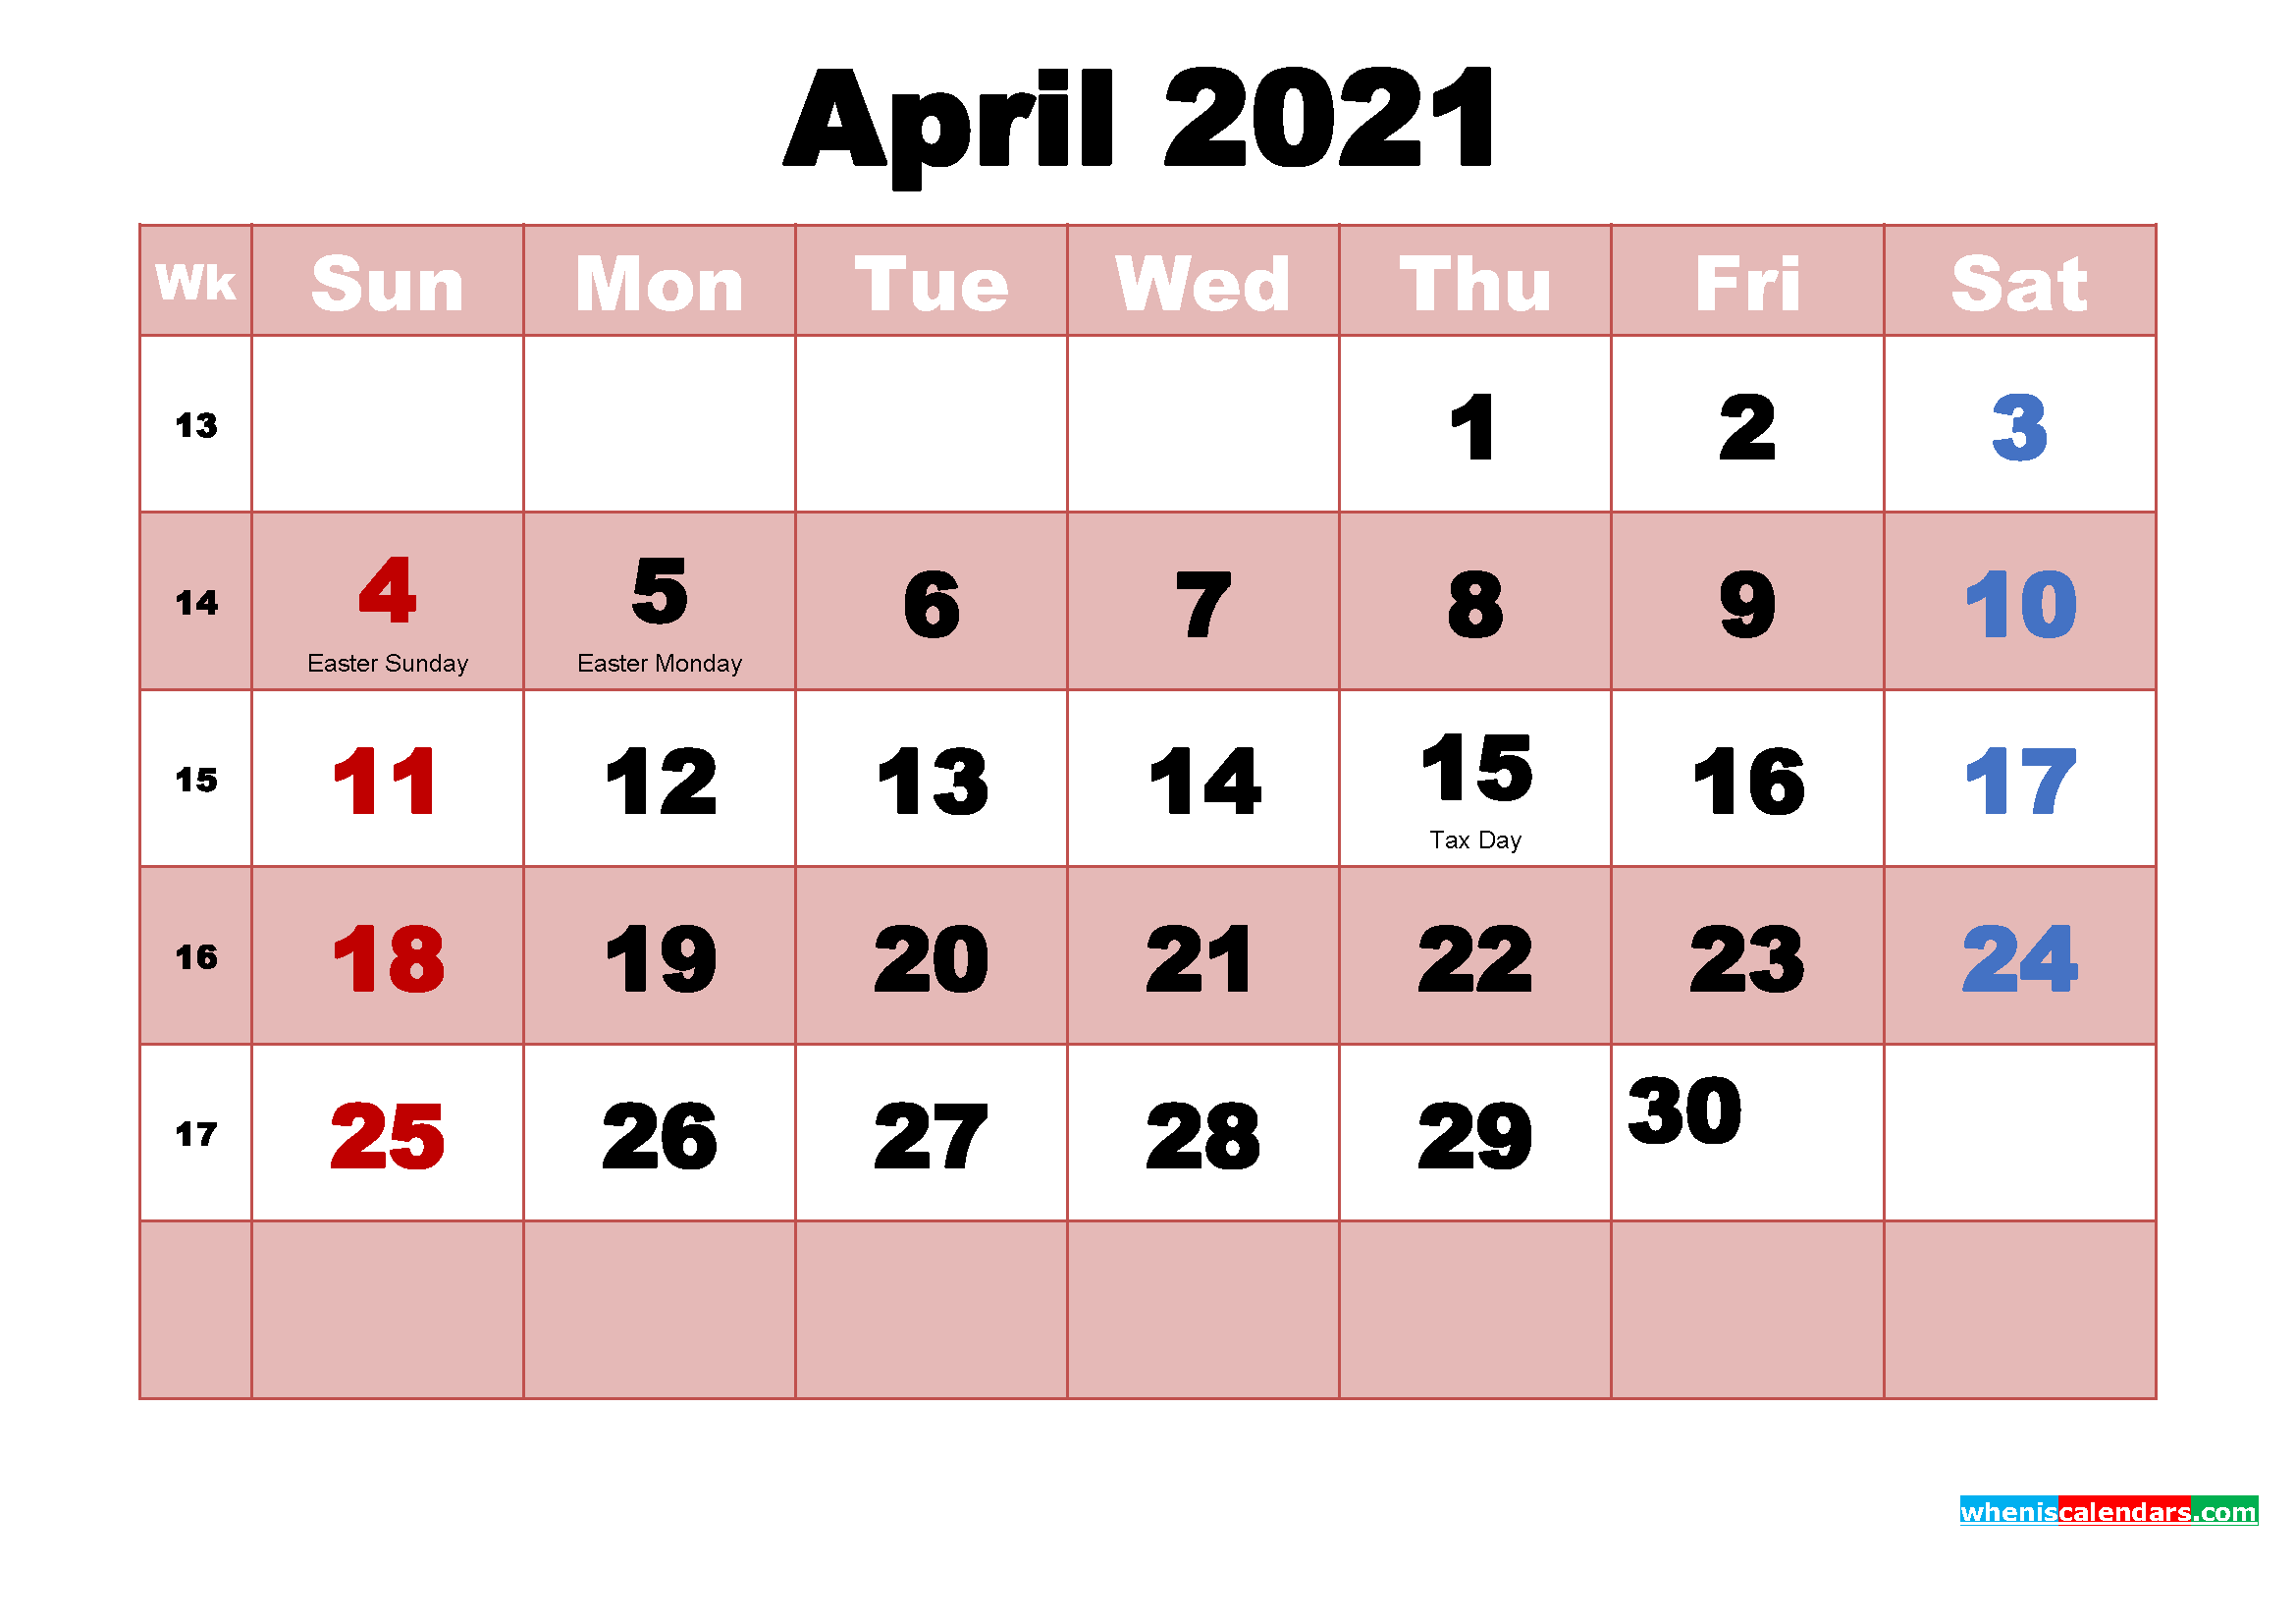 April 2021 Printable Monthly Calendar with Holidays